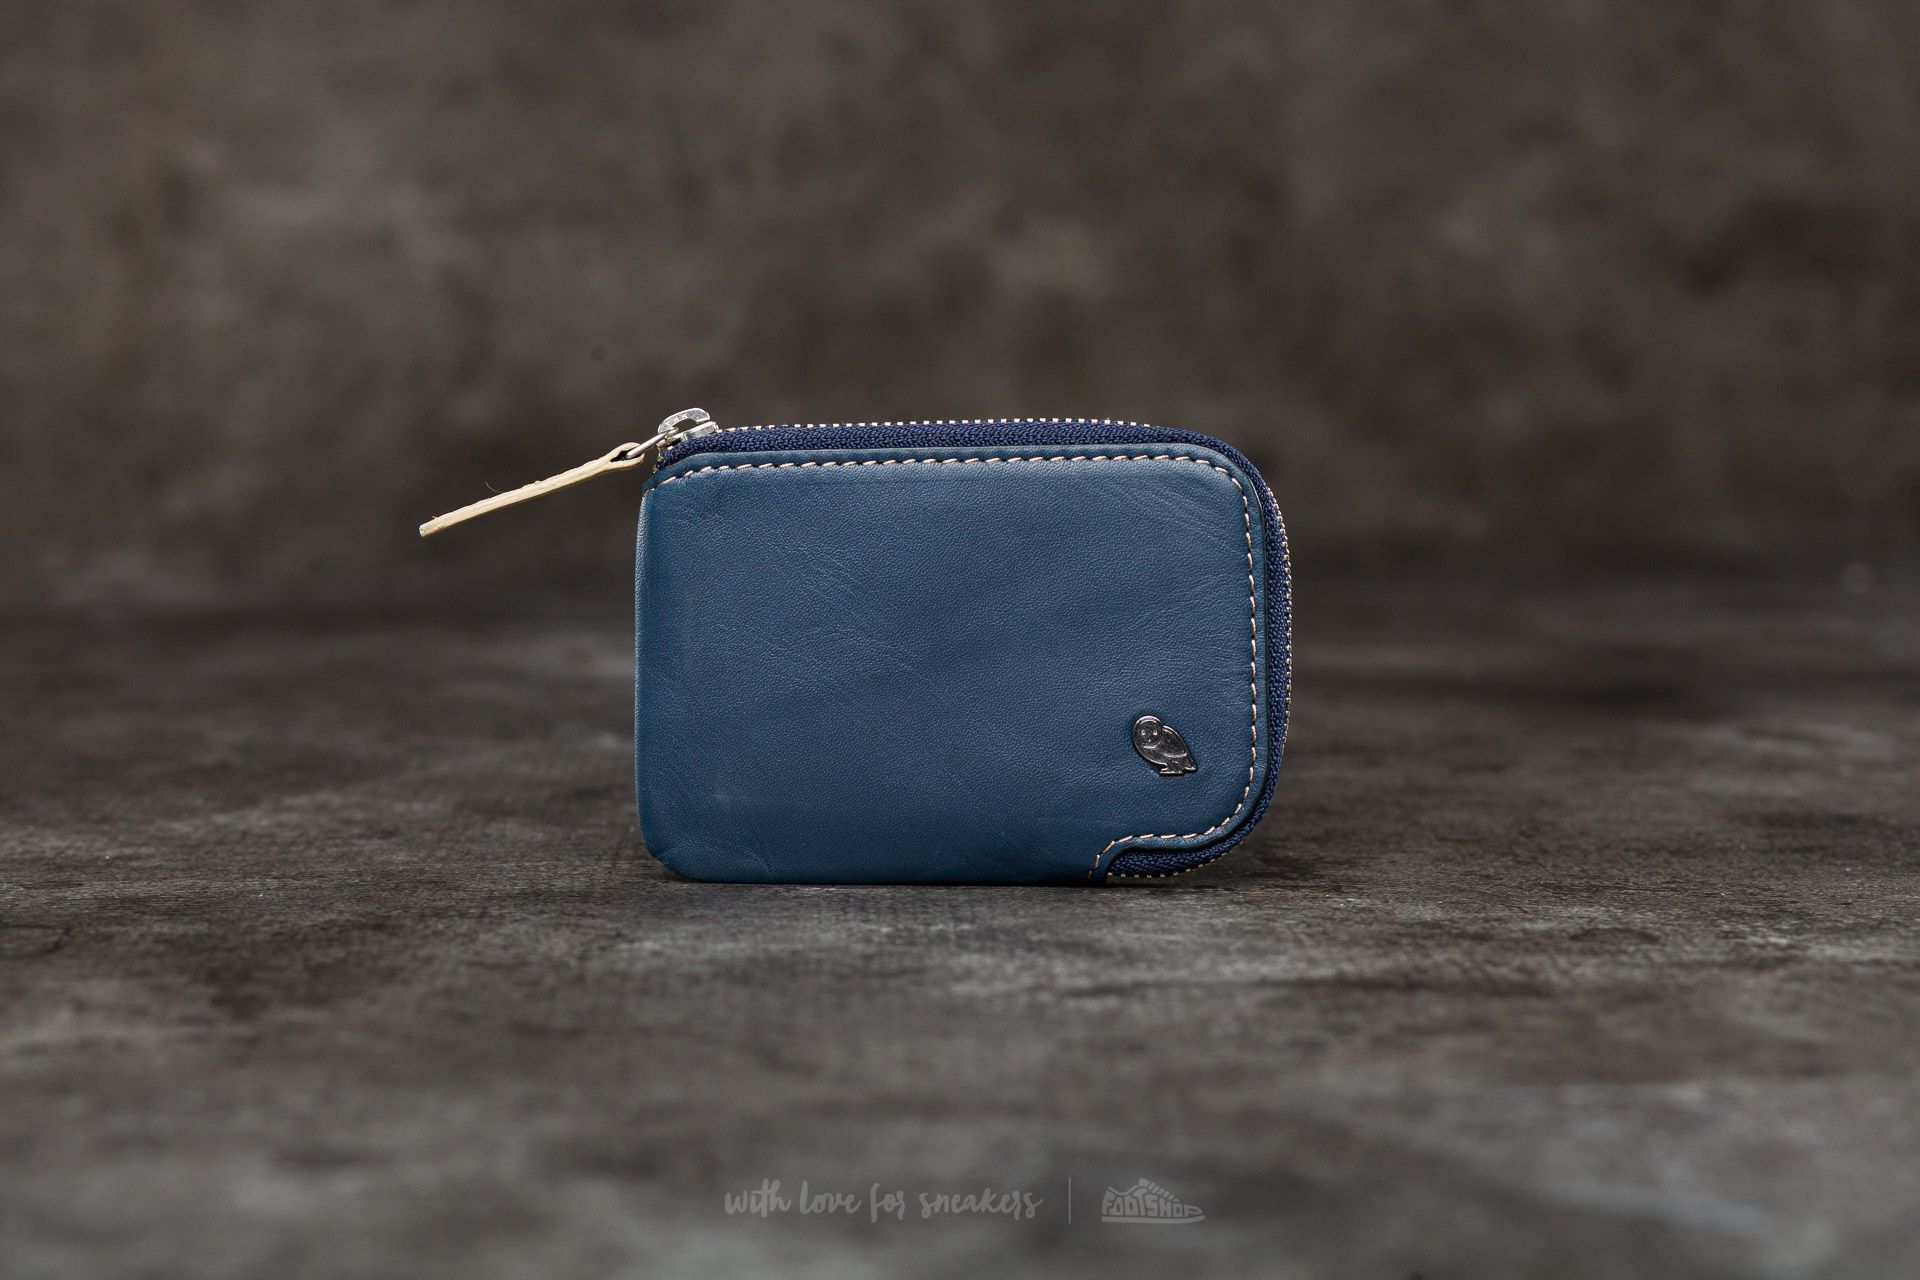 Bellroy Card Pocket Bluesteel - 12265